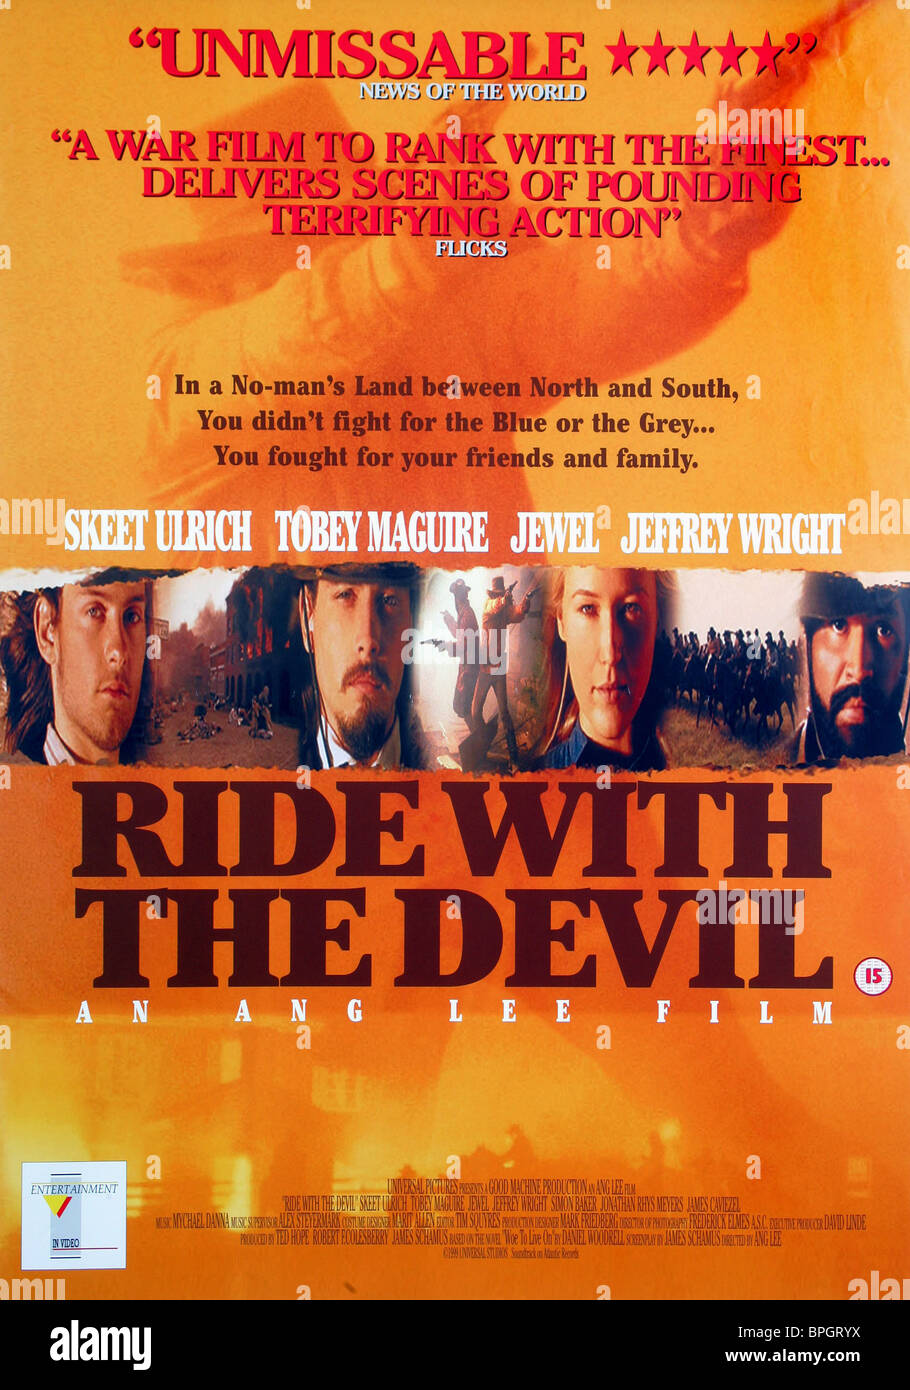 film-poster-ride-with-the-devil-1999-BPGRYX.jpg